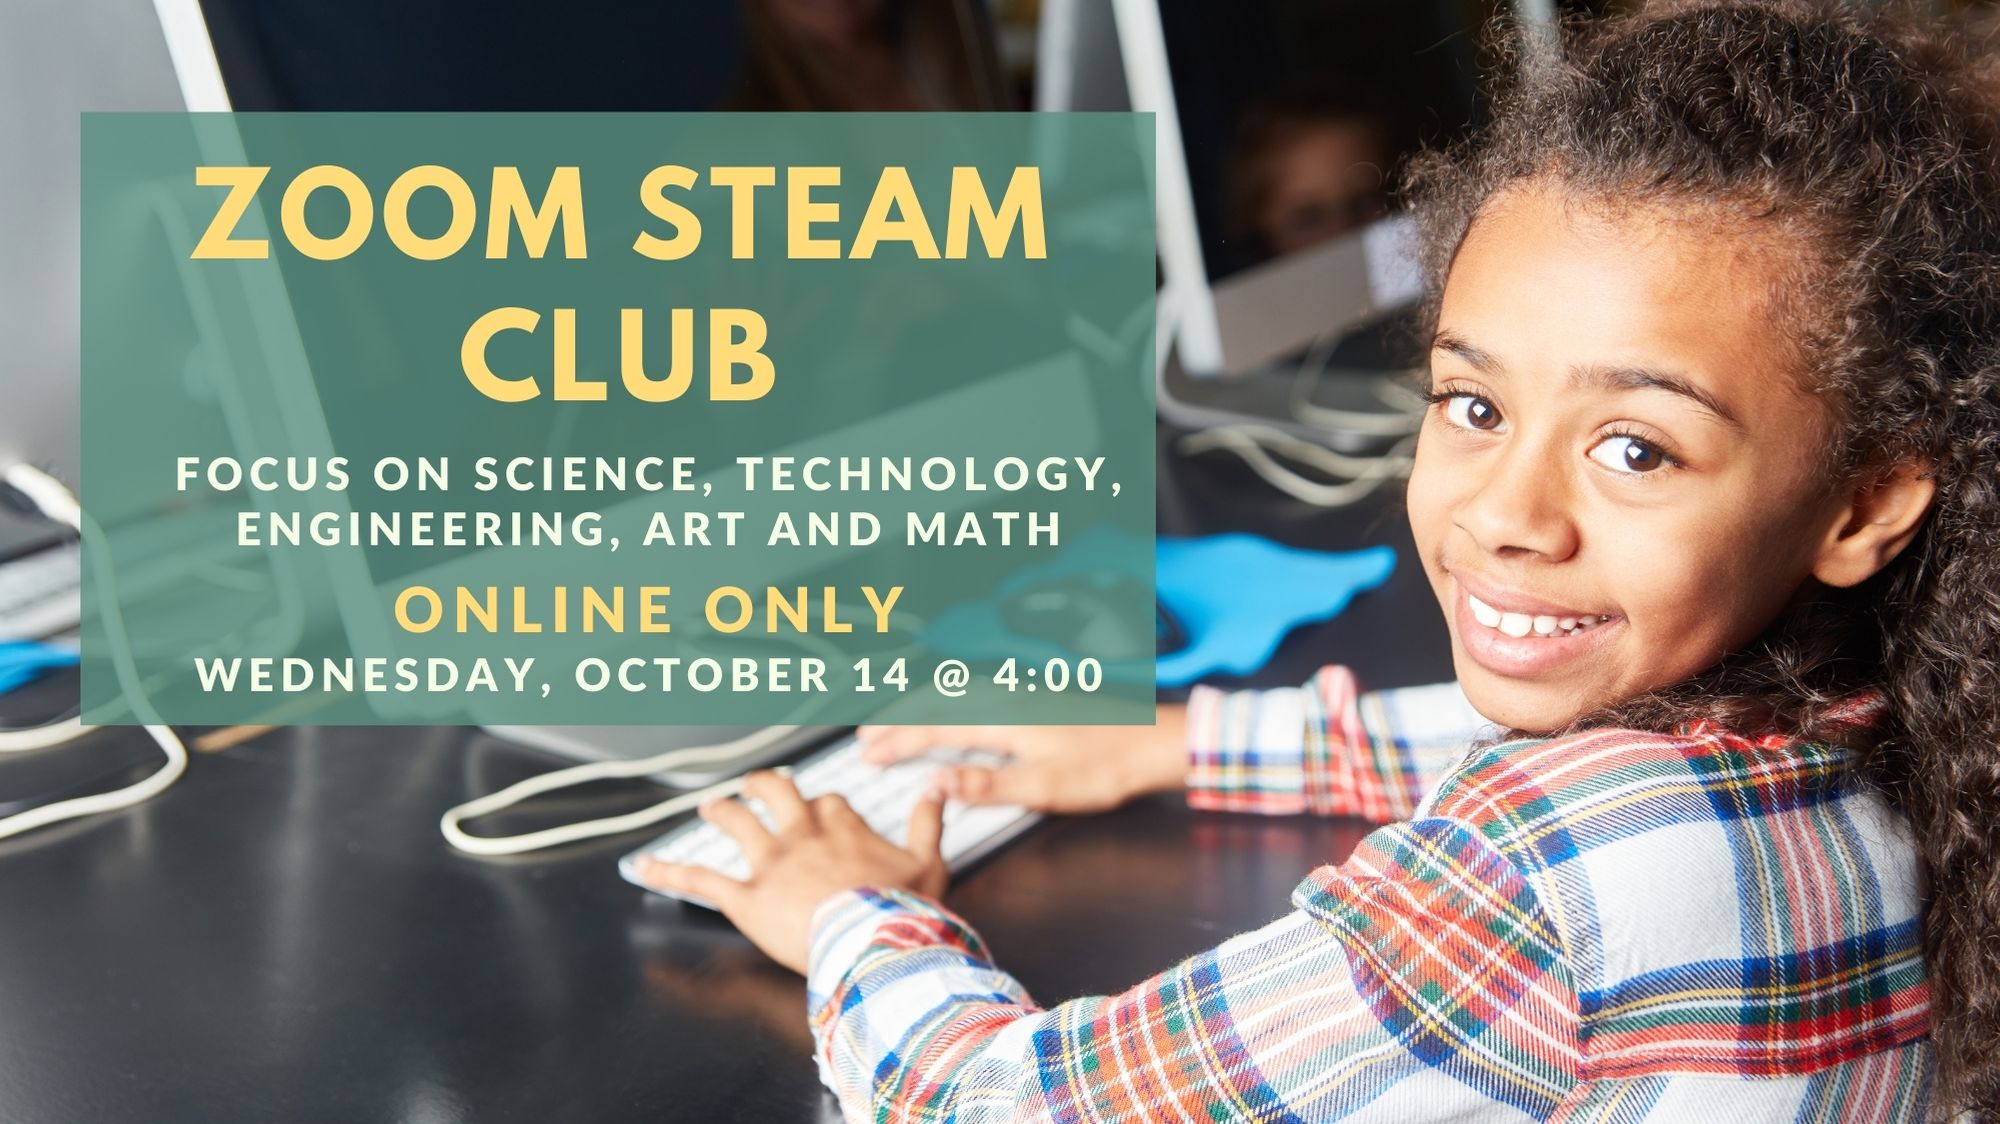 Zoom STEAM Club - Online!